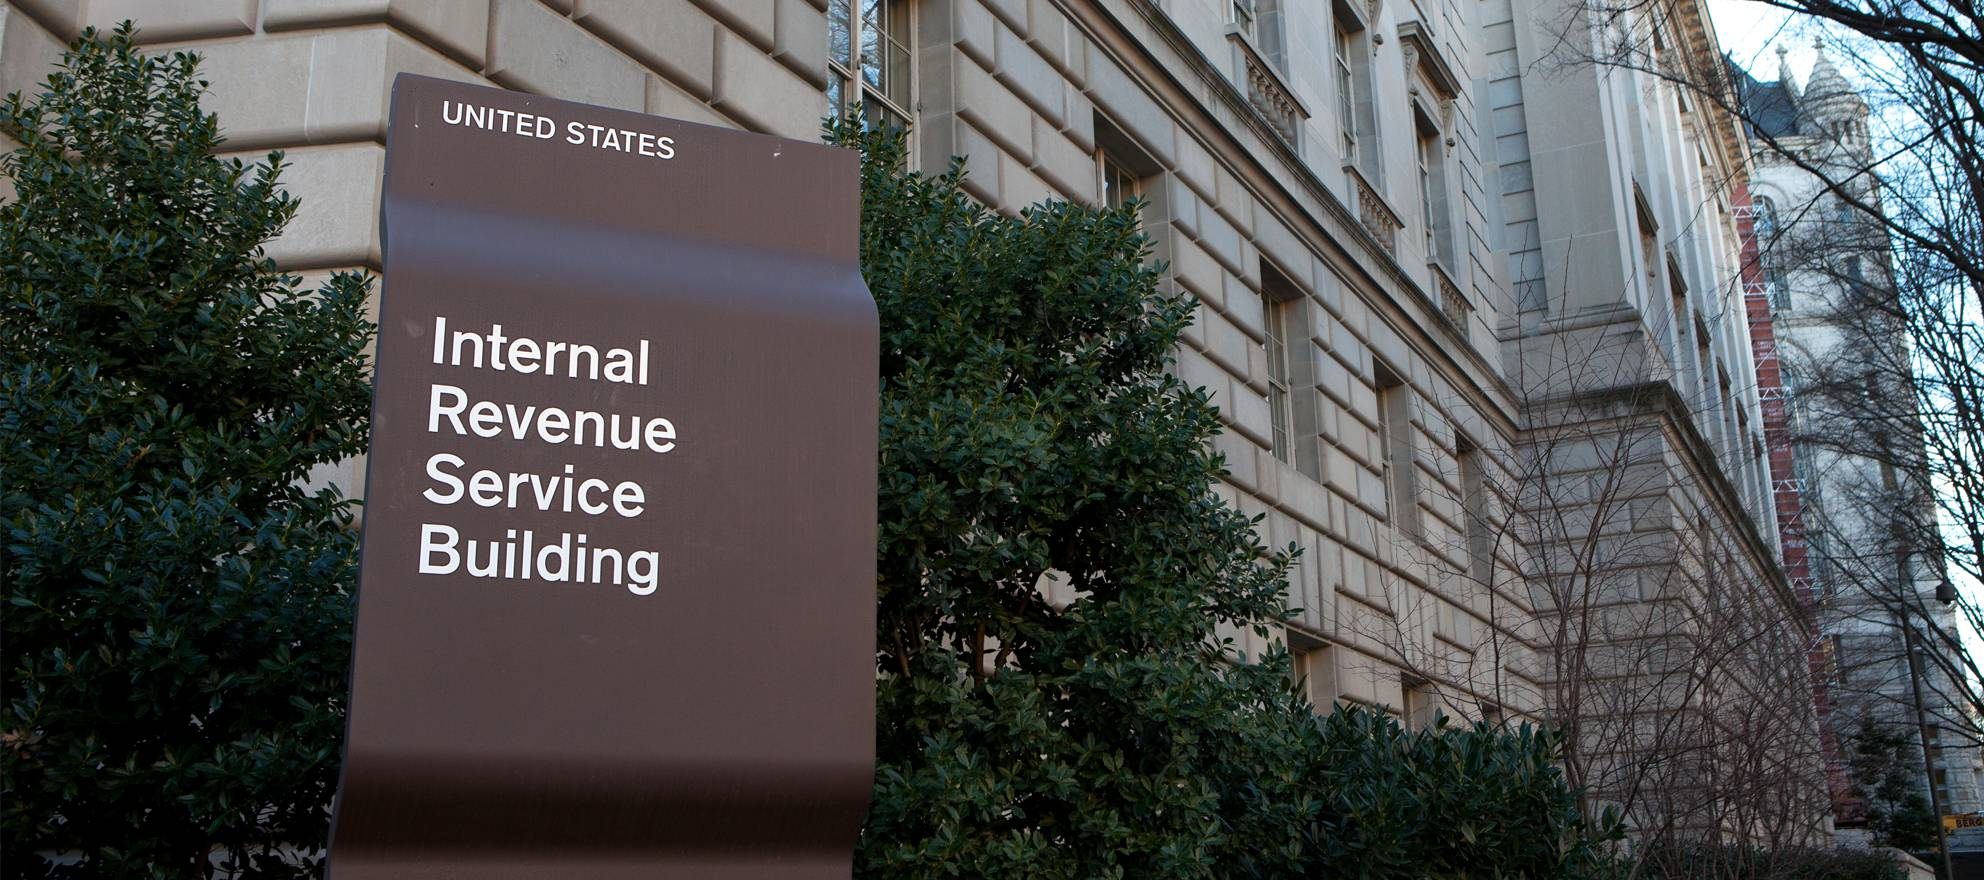 How to remove federal tax lien from consumer credit file